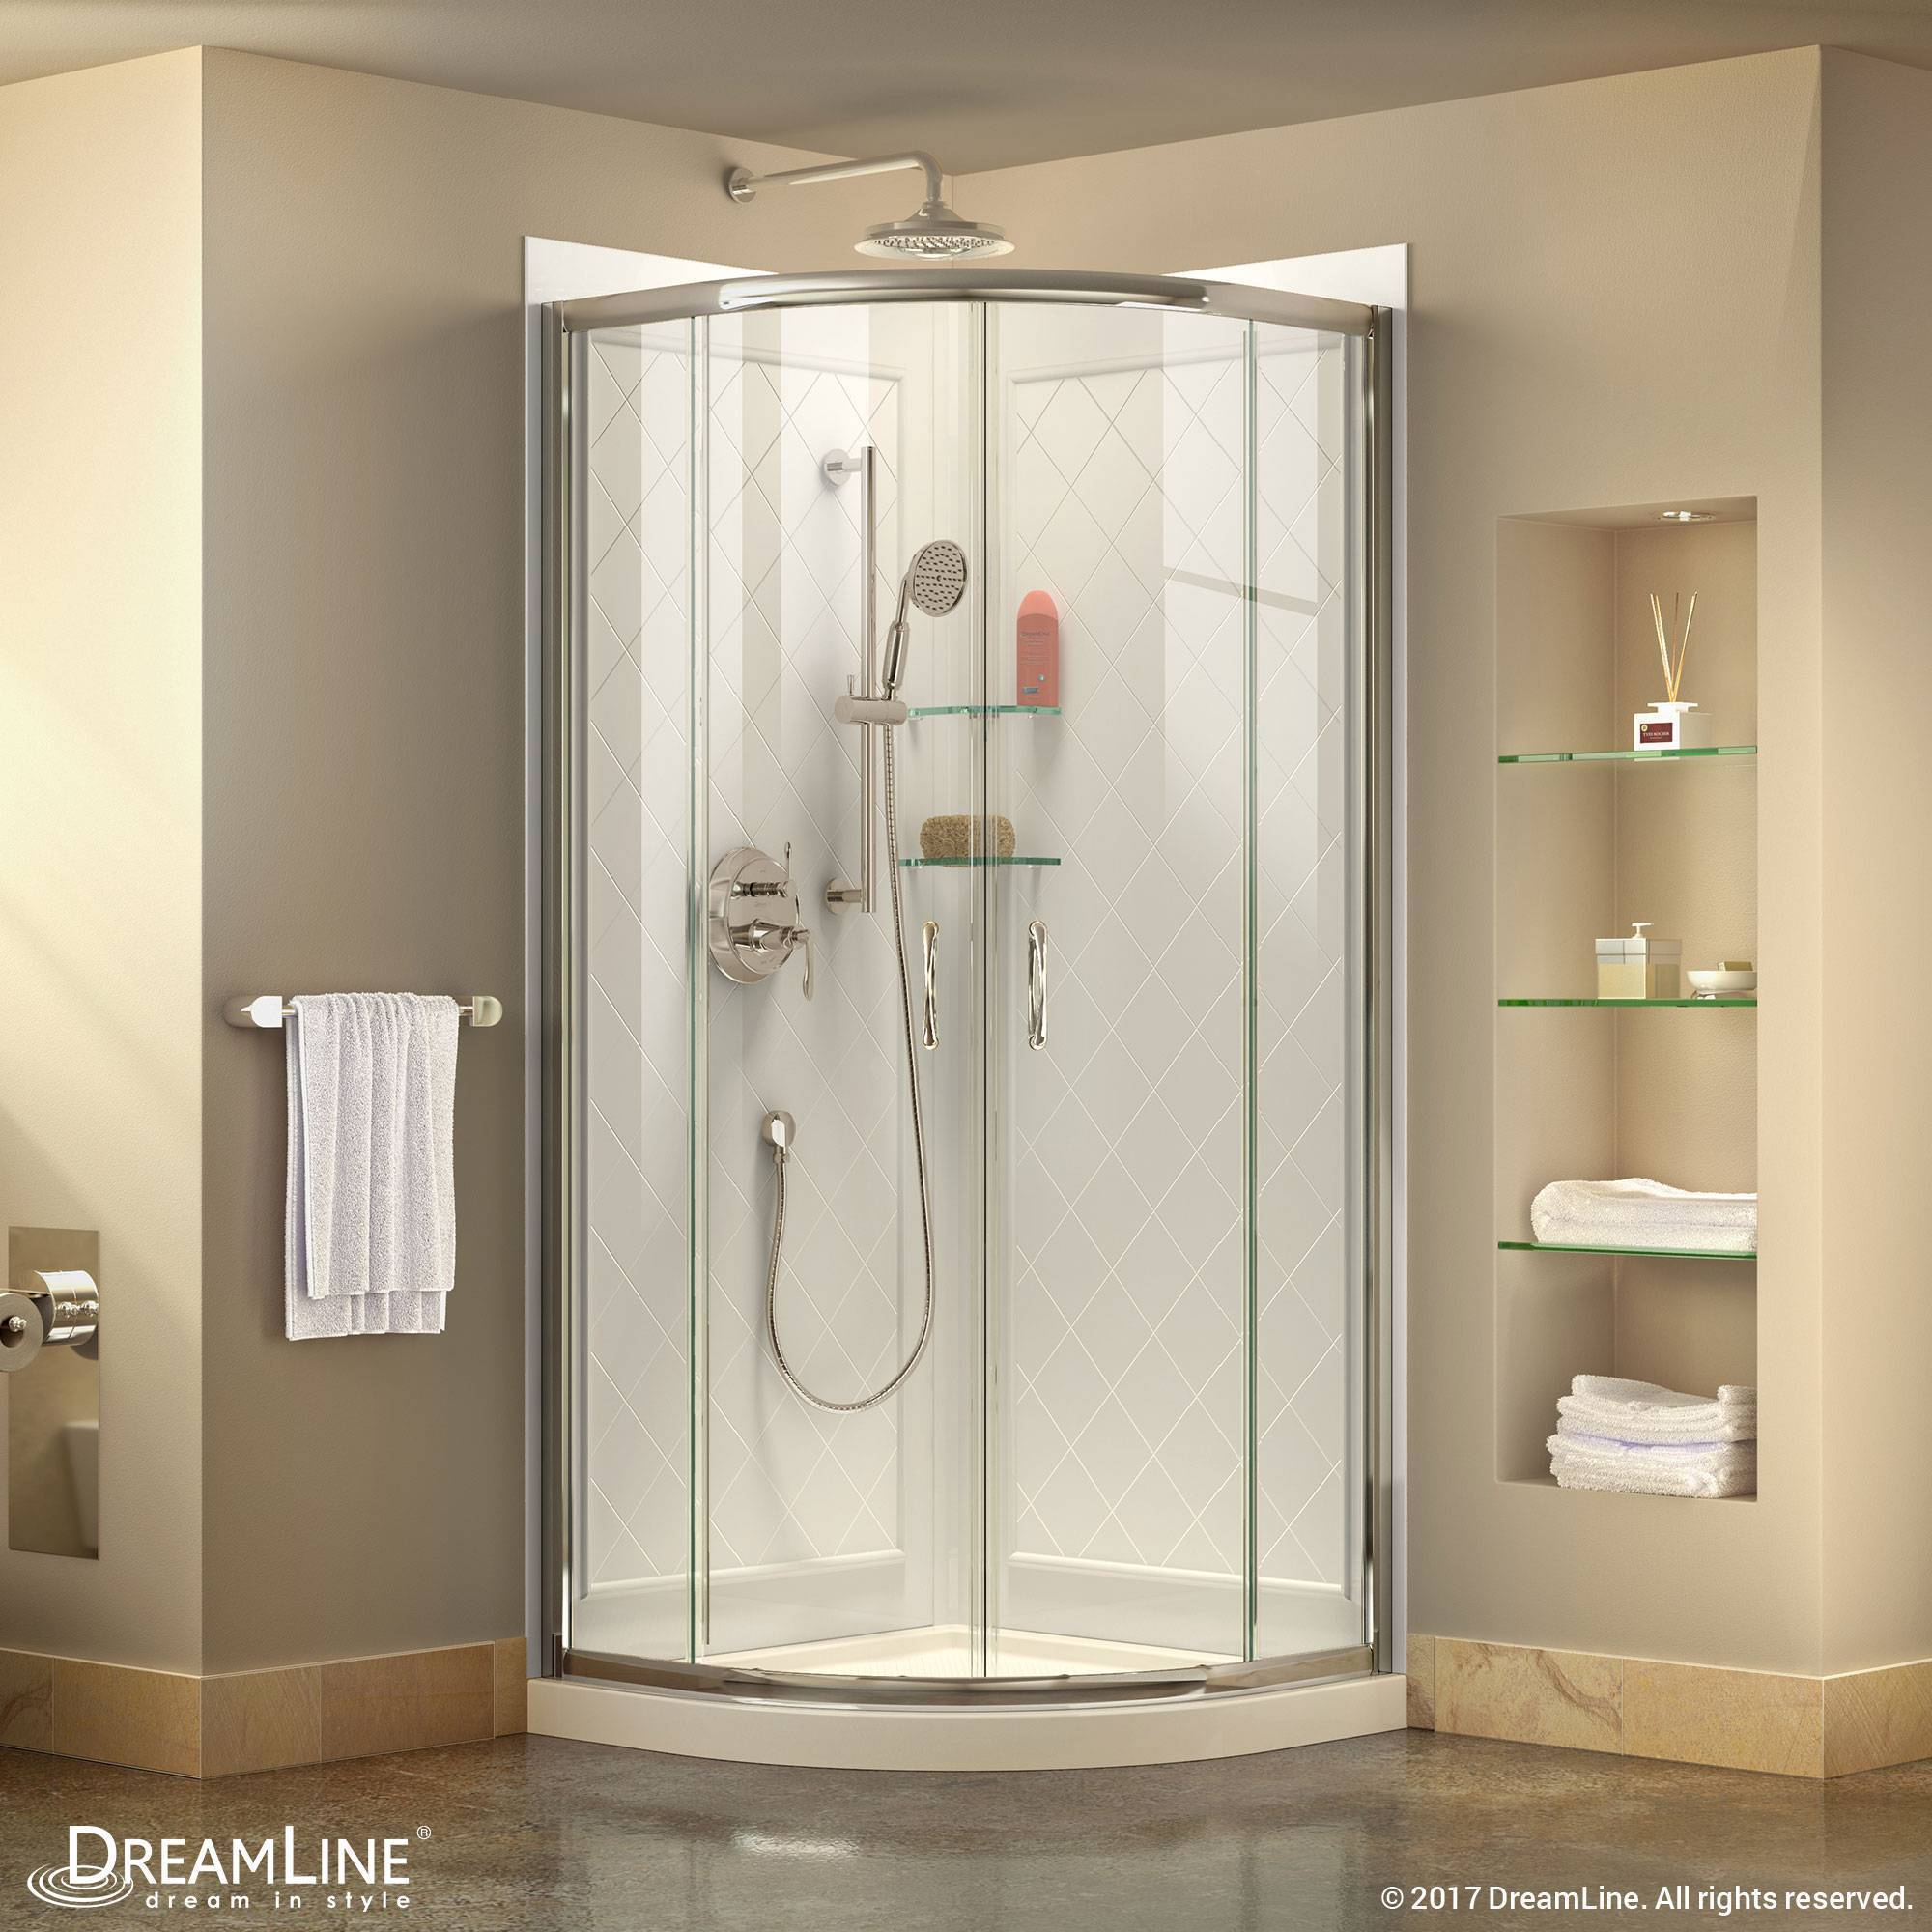 DreamLine Prime Sliding Shower Enclosure, Base, & Backwall